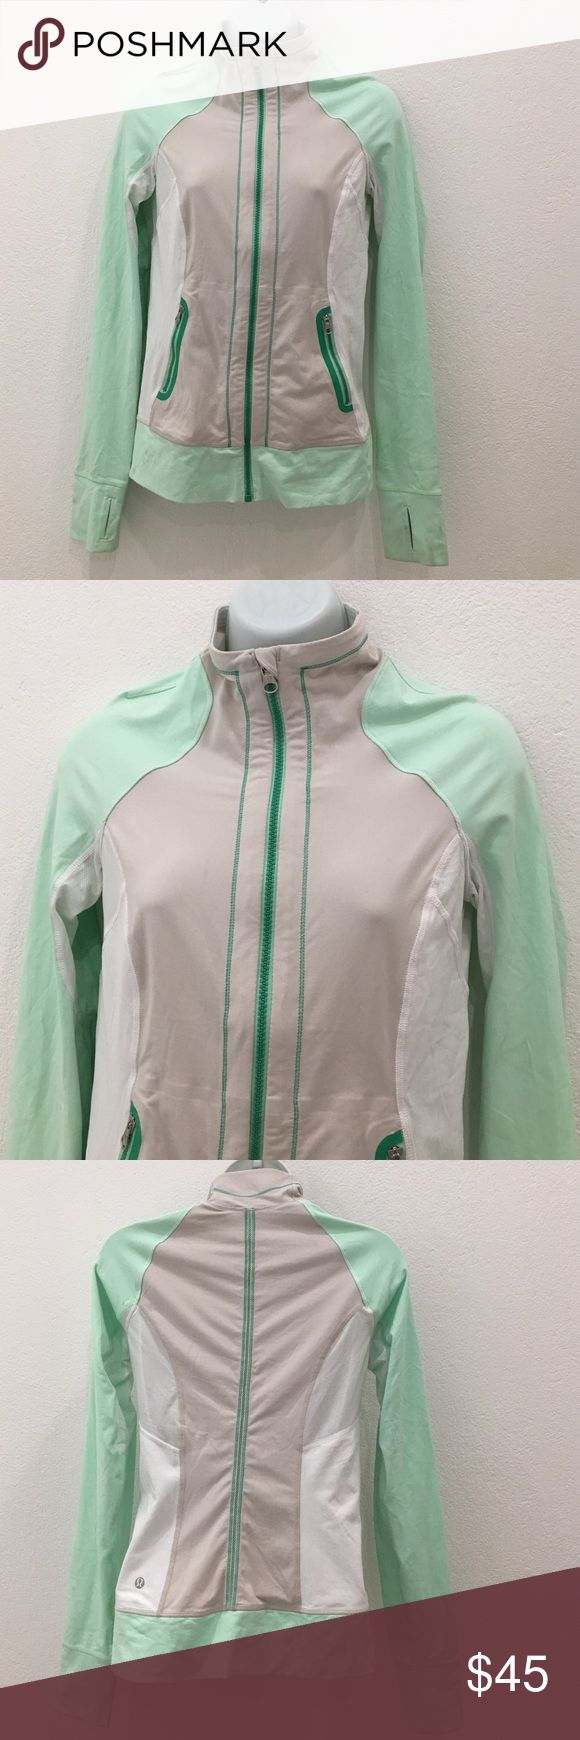 Lululemon Full Zip Jacket size 4? Preowned Lululemon Full Zip Jacket size 4. Mint, beige and white. Has thumbholes. Please look at pictures for better reference. Happy shopping!! lululemon athletica Tops